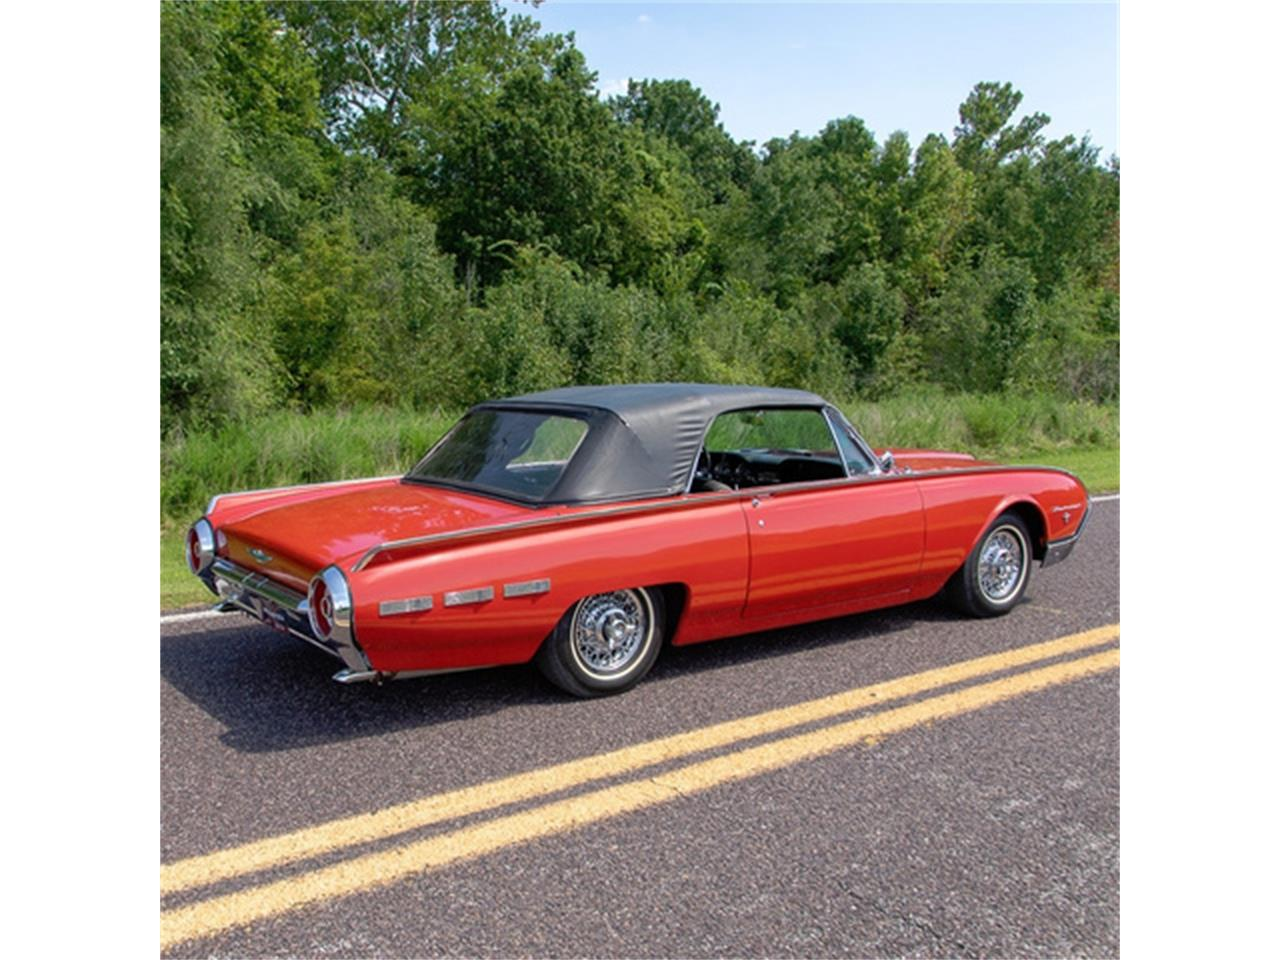 Large Picture of Classic '62 Ford Thunderbird located in Missouri - $27,500.00 - QXLJ